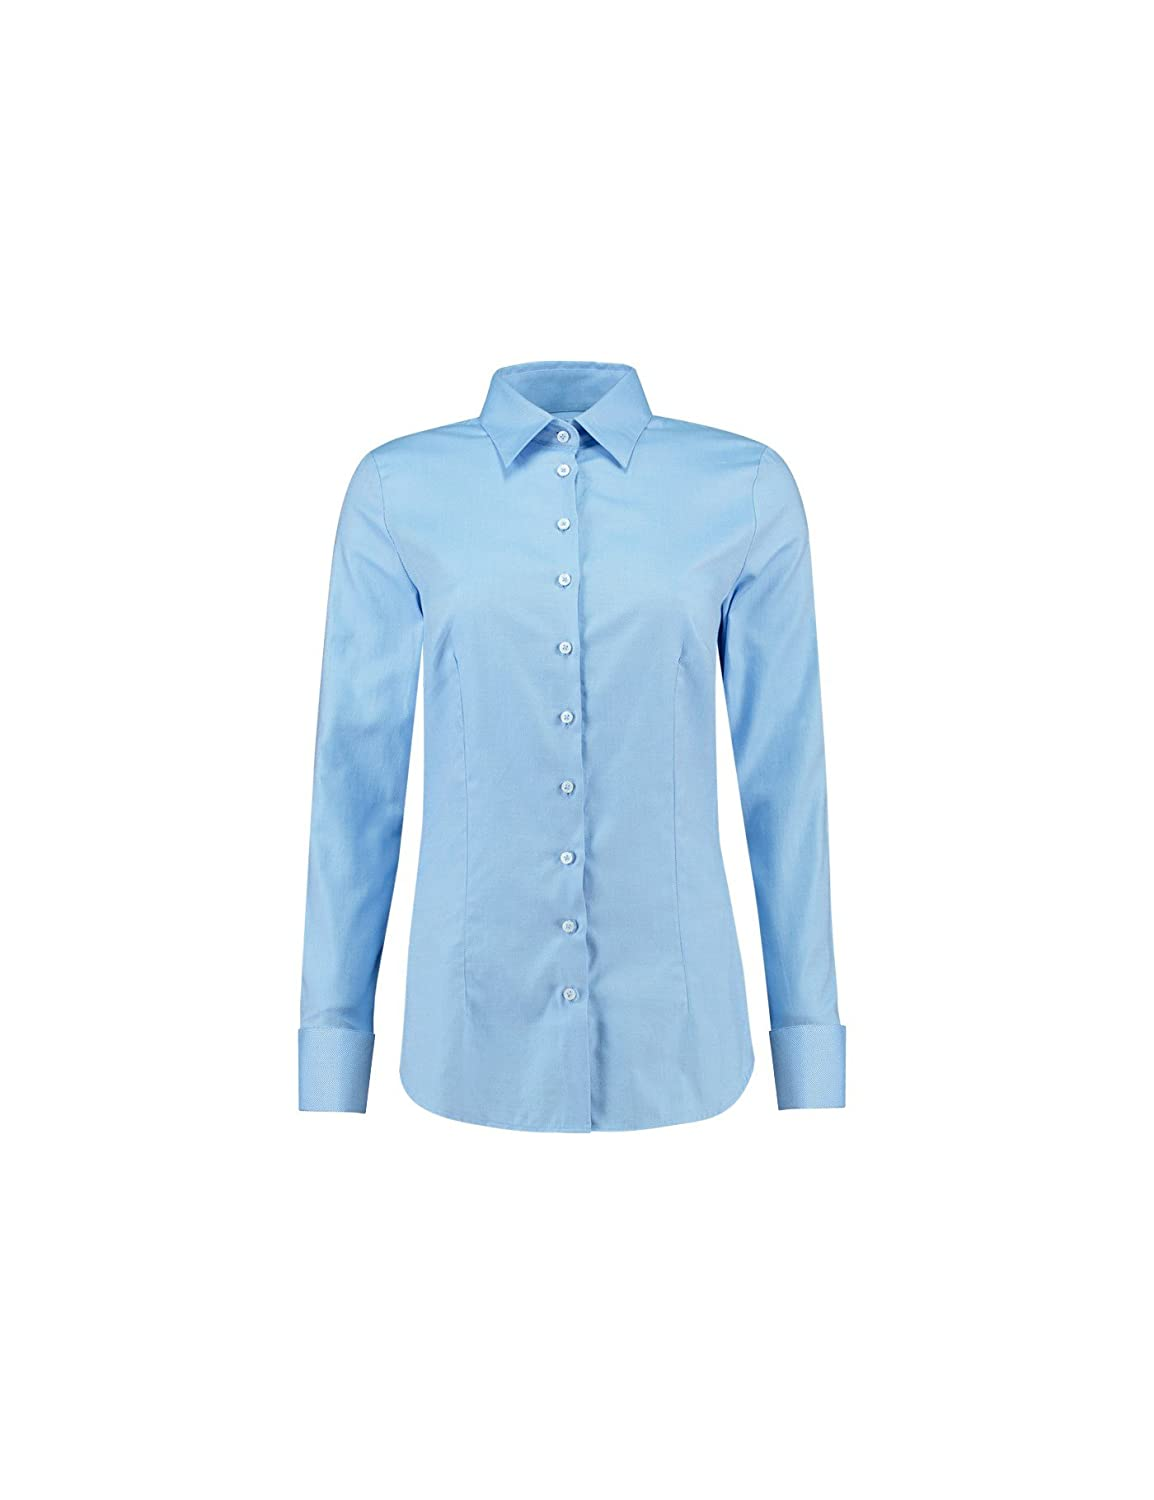 03e7d3fd6f68 HAWES & CURTIS Womens Executive Twill Fitted Shirt - Double Cuff - Cotton,  Blue, 6: Amazon.co.uk: Clothing